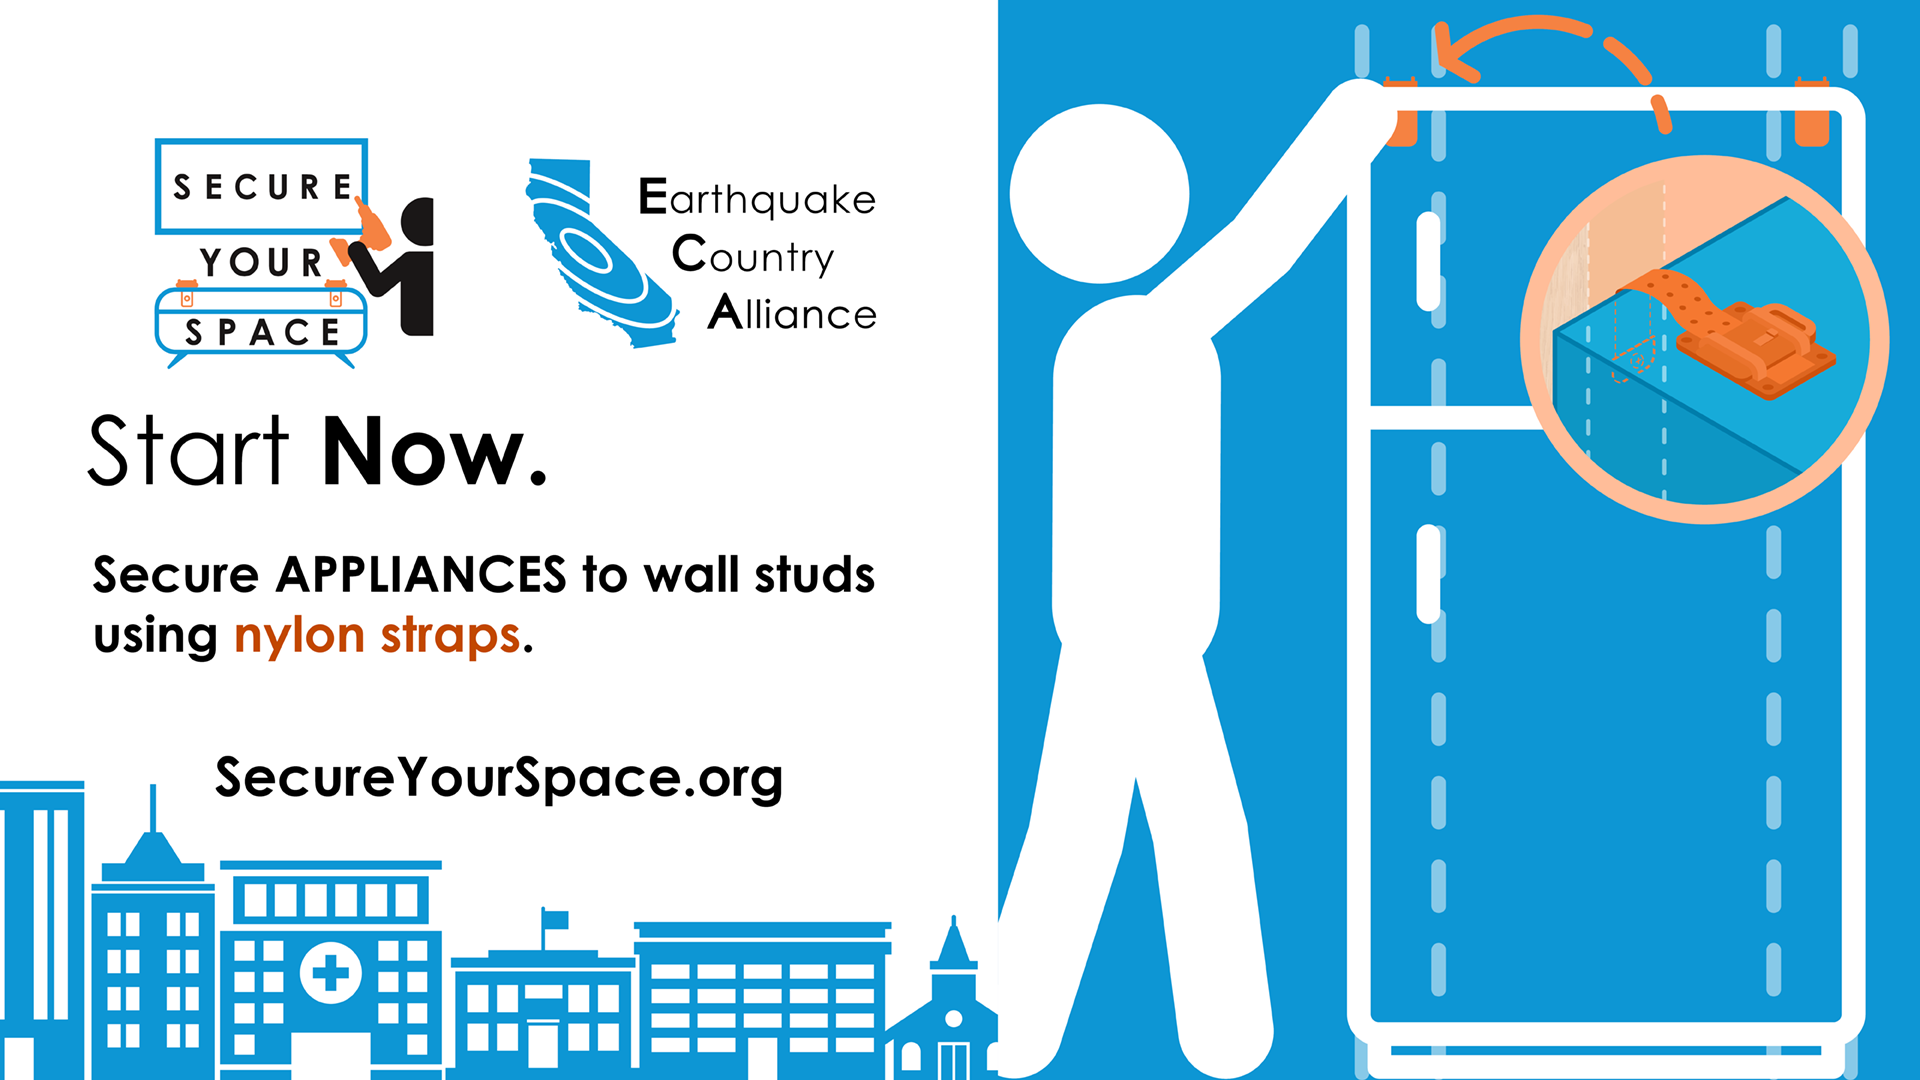 Graphic showing how to secure a refrigerator for earthquake shaking with nylon straps, and promoting SecureYourSpace.org.